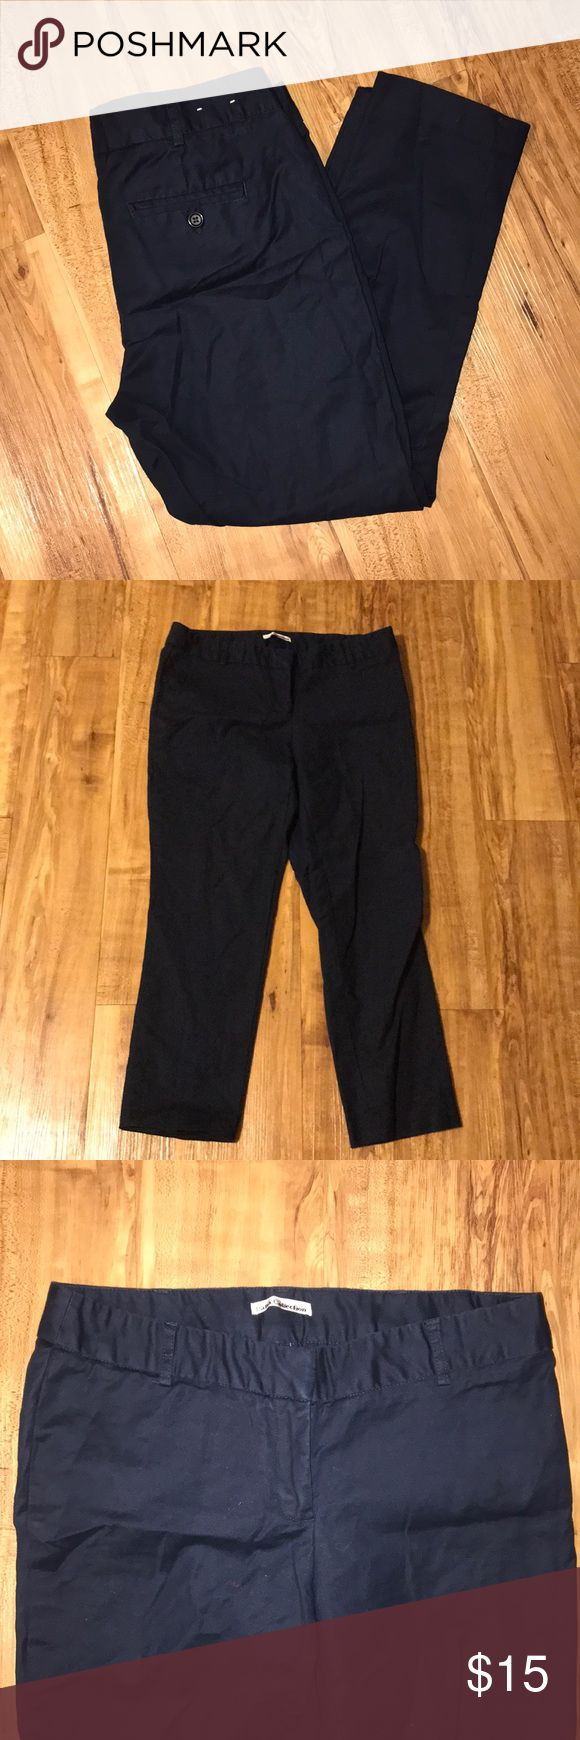 Dahlia Collection Navy Capri Trousers This is in a great pre-owned condition. One of the hems on the pant legs is coming undone but only on one side—it should be an easy fix. Dahlia Collection Pants Capris